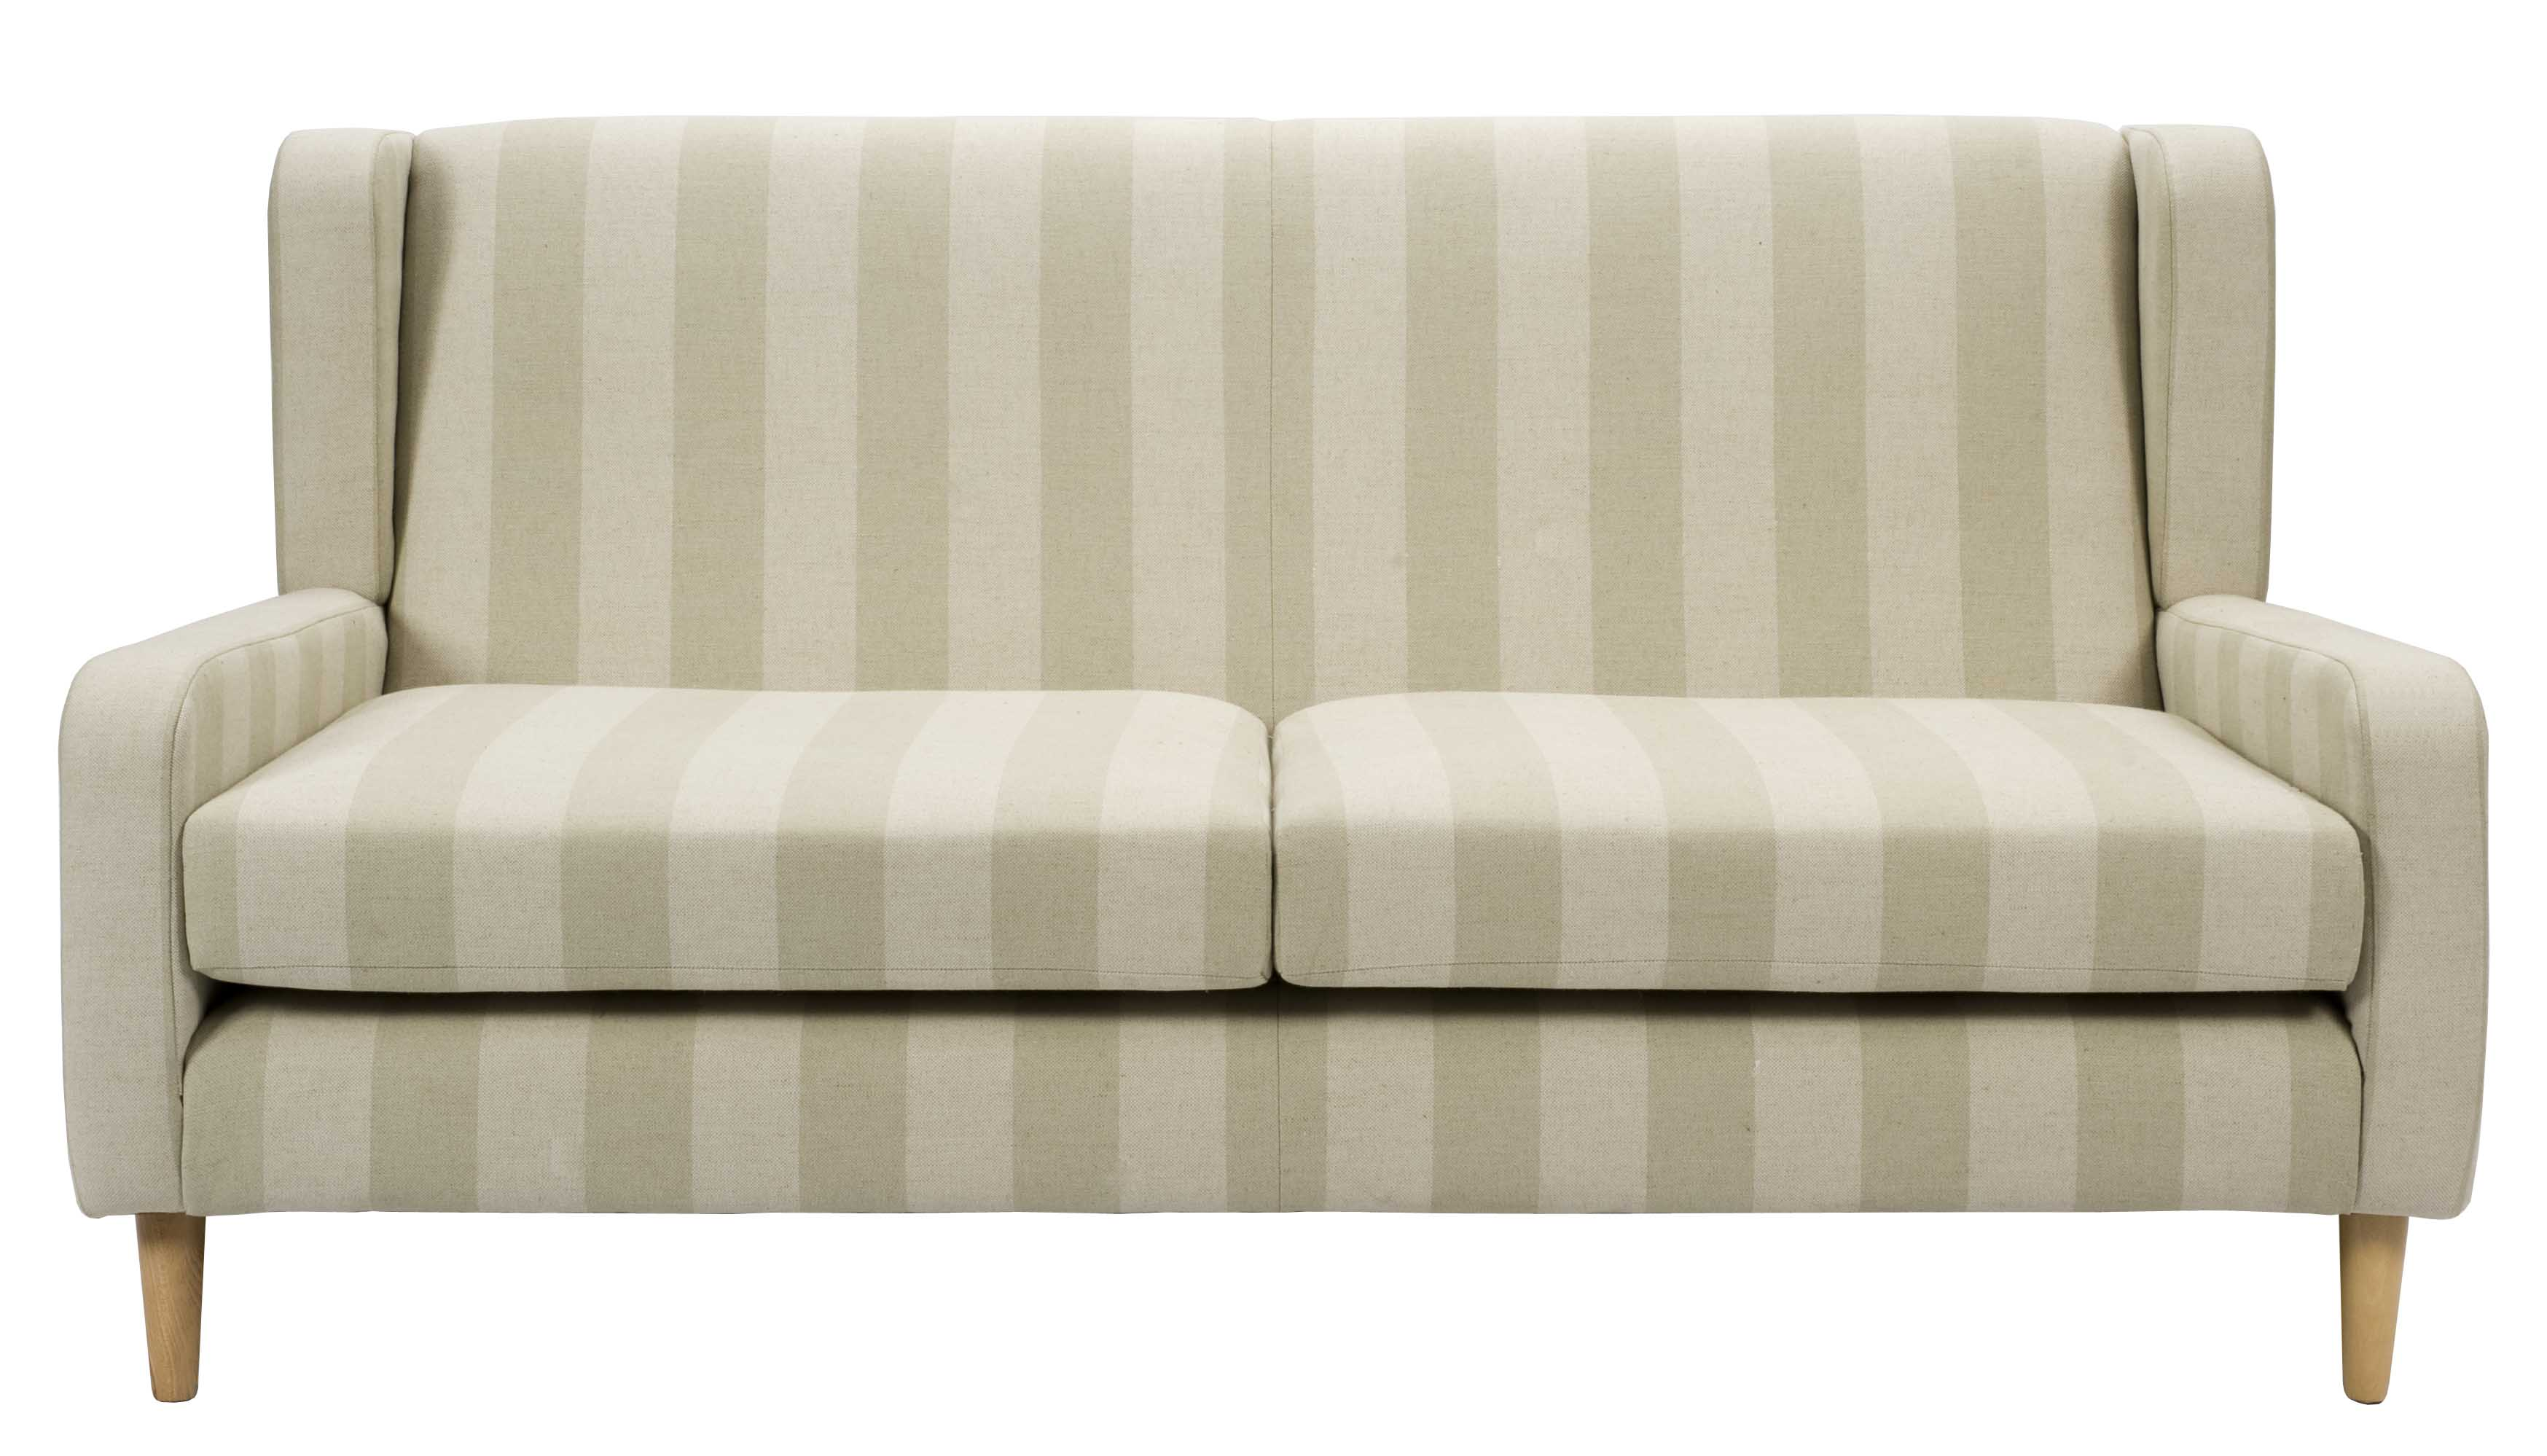 https://prhome.co.uk/sites/default/files/products/rye_sofa_-_face_on.jpg